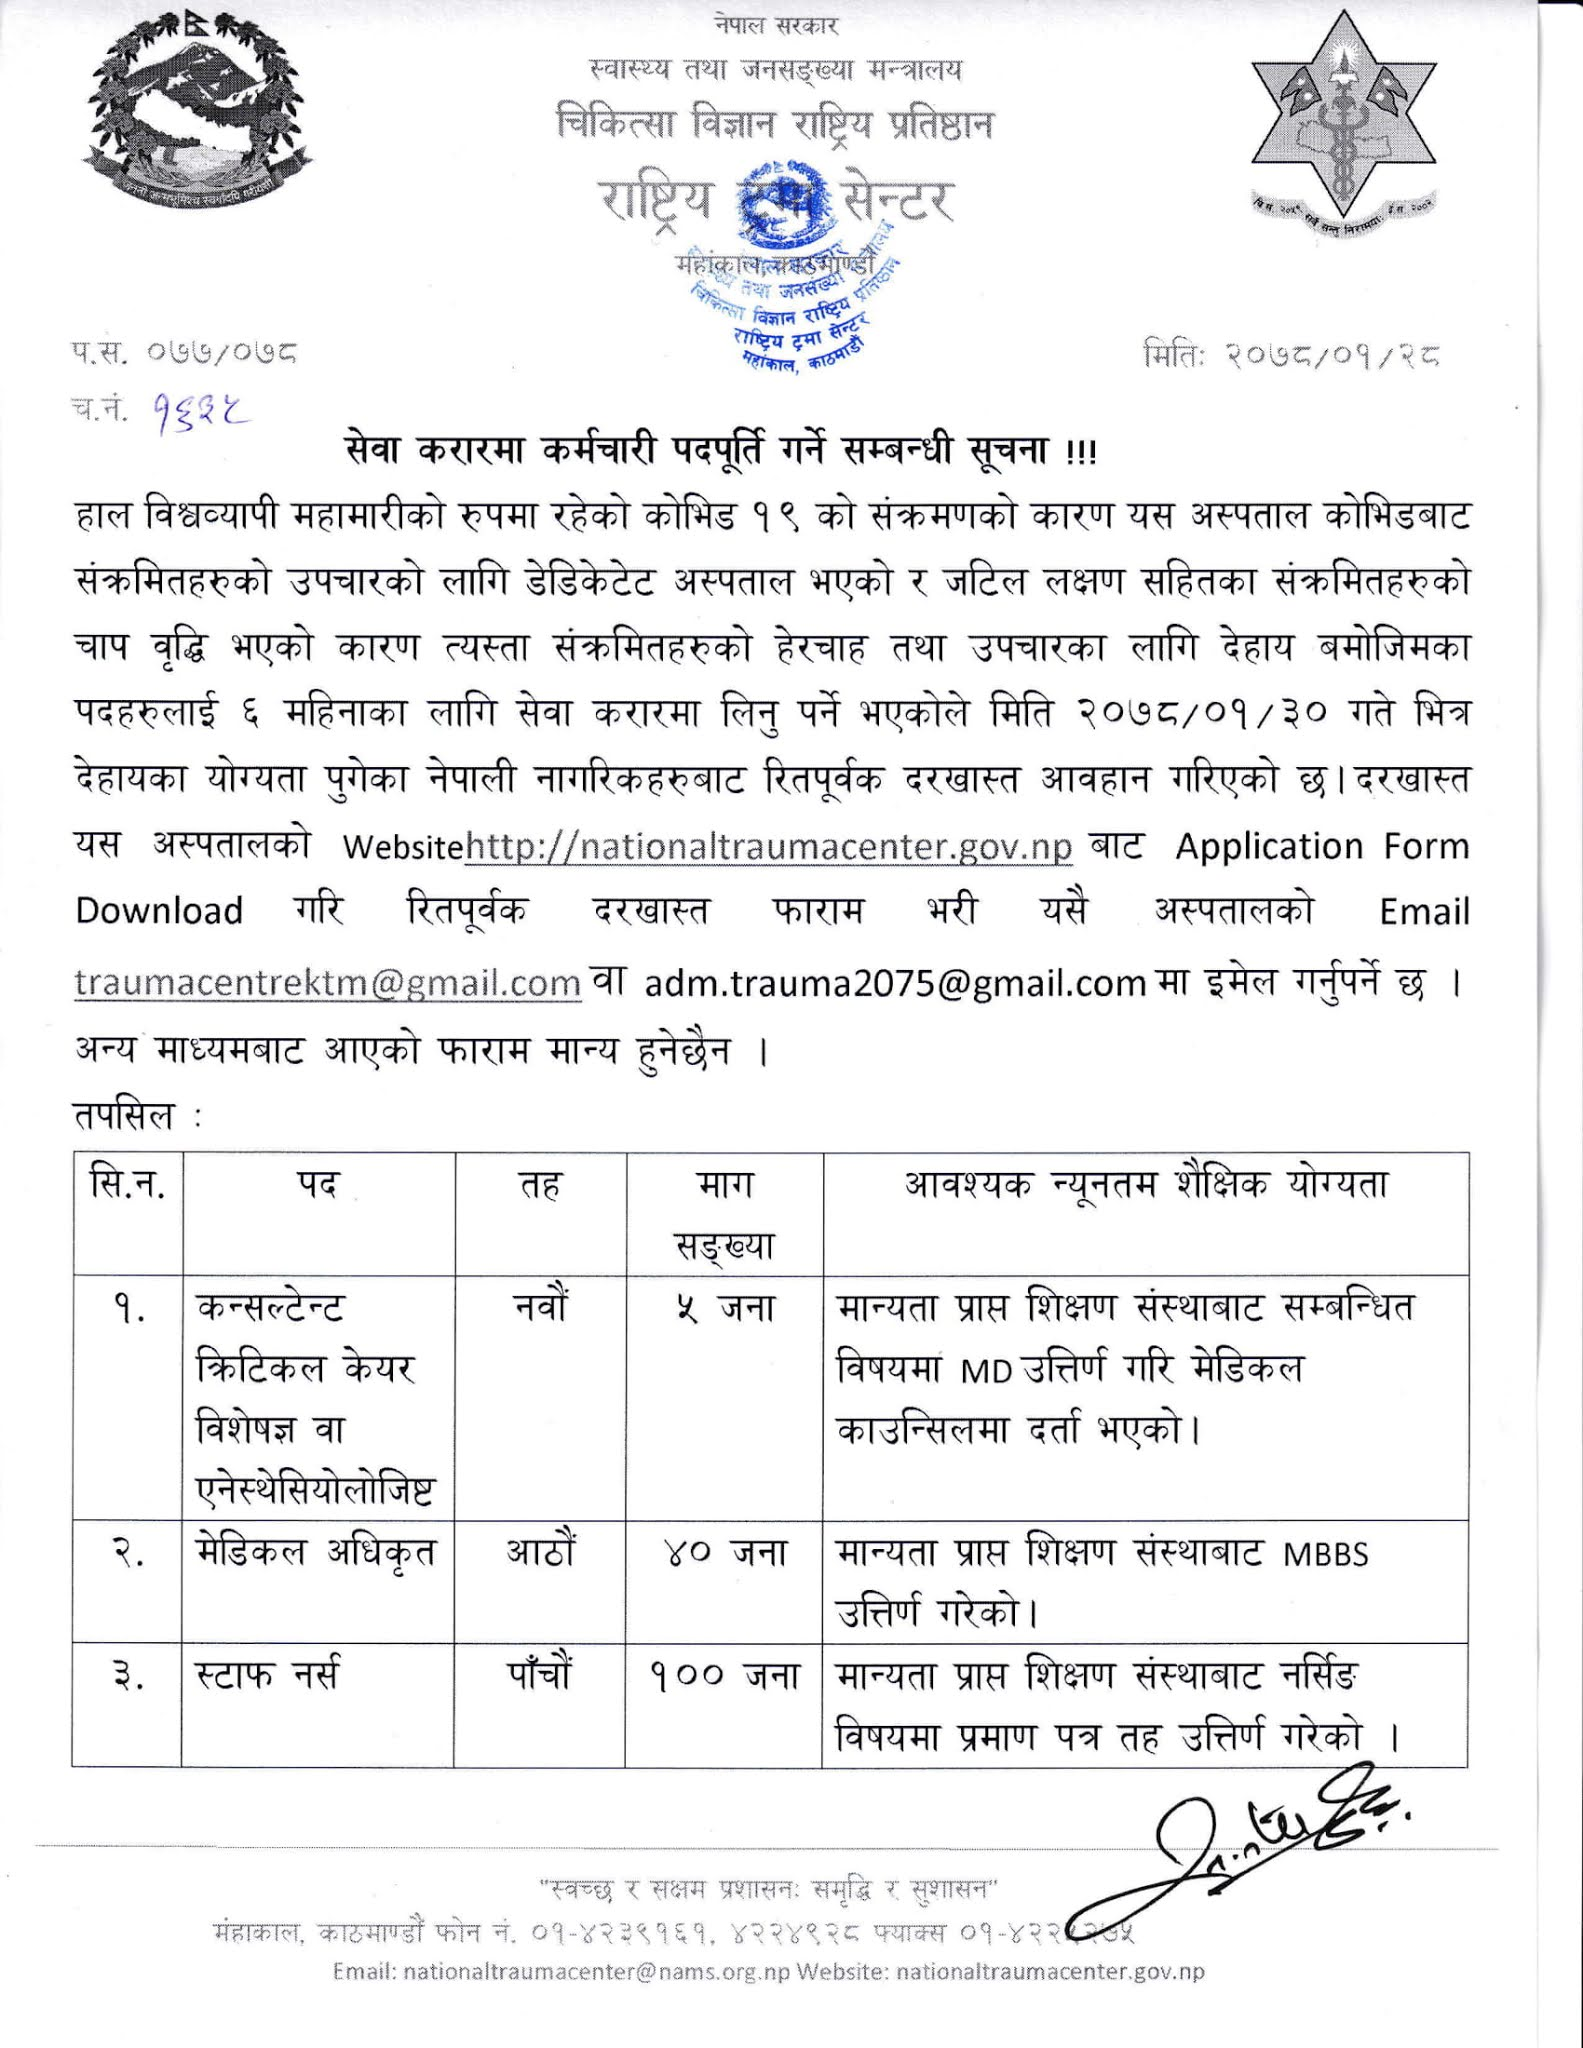 National Trauma Center, Kathmandu Vacancy Announcement for Various Health Services Staff Nurse, Medical Officer, Lab Technician, Driver, Radiographer, Consultant Critical Care Specialist Or Anesthesiologist, etc